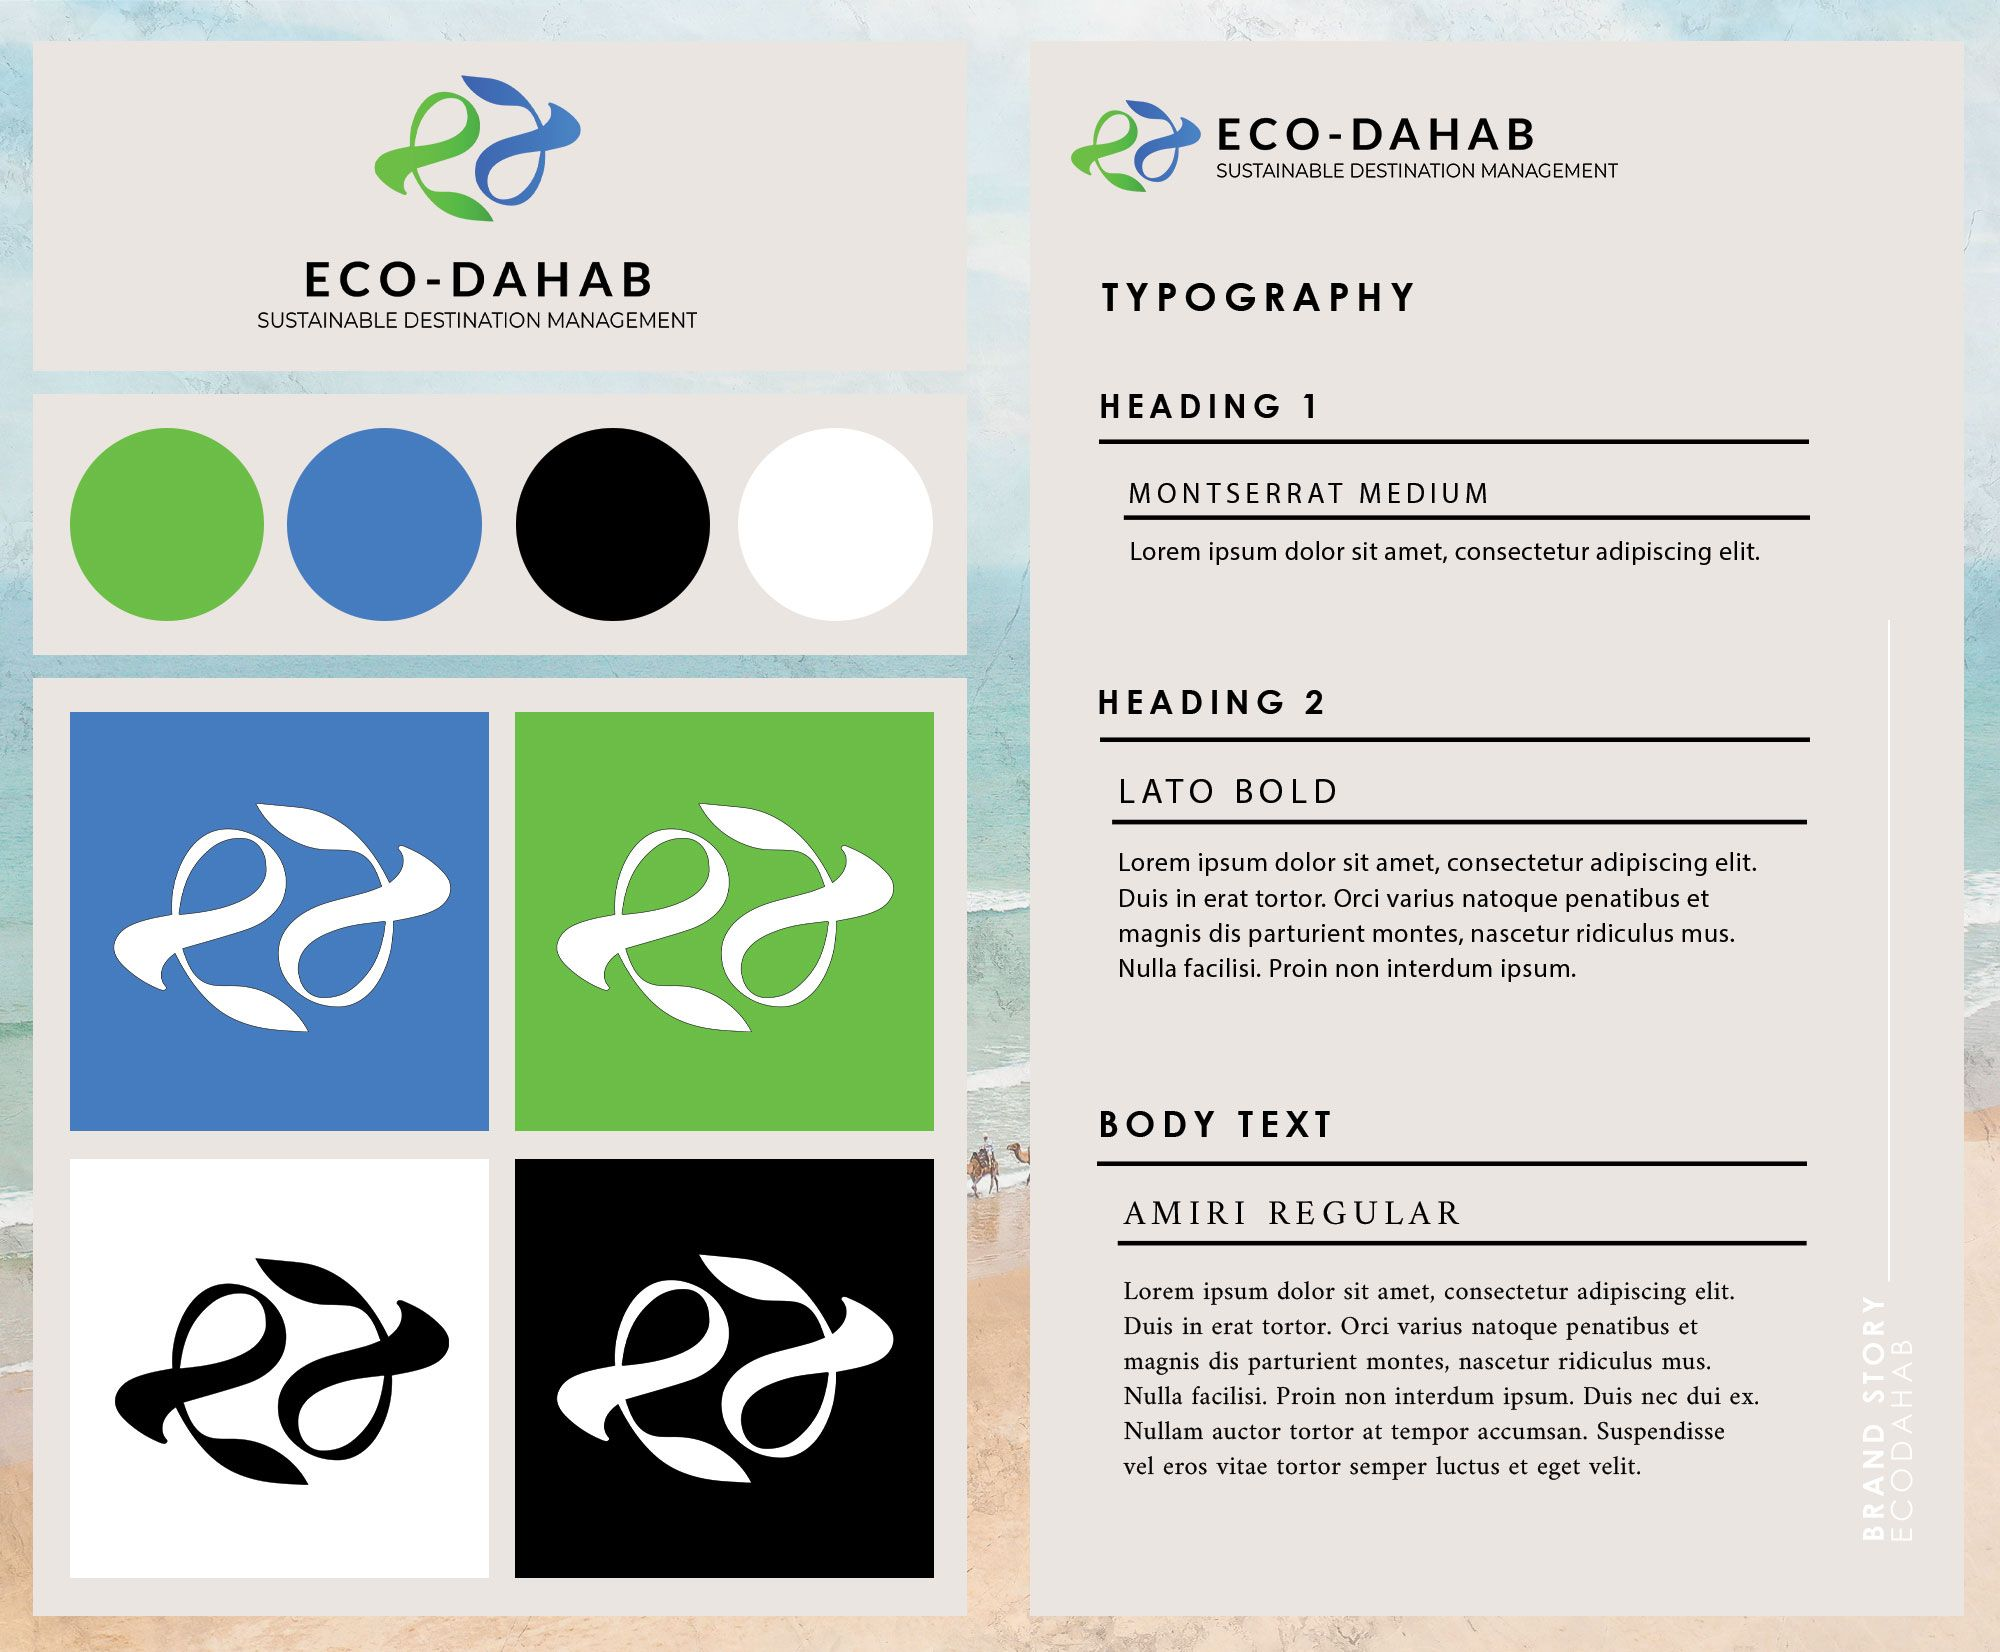 Style Guide for our Partners Eco Dahab, pioneers in eco tourism. Click hear to learn more about our creative branding process and services . #tablocreative #unconventionalcreative #unconventionalcreatives #creativeagency #thecreatorclass #thesix #hypetoronto #torontocreativeentrepreneurs #designinspo  #designinspo #brandidentity #instadesign #graphicdesign #artdirection #colorinspiration #moodboard #digitaldesign #typography #logodesign #styleguide